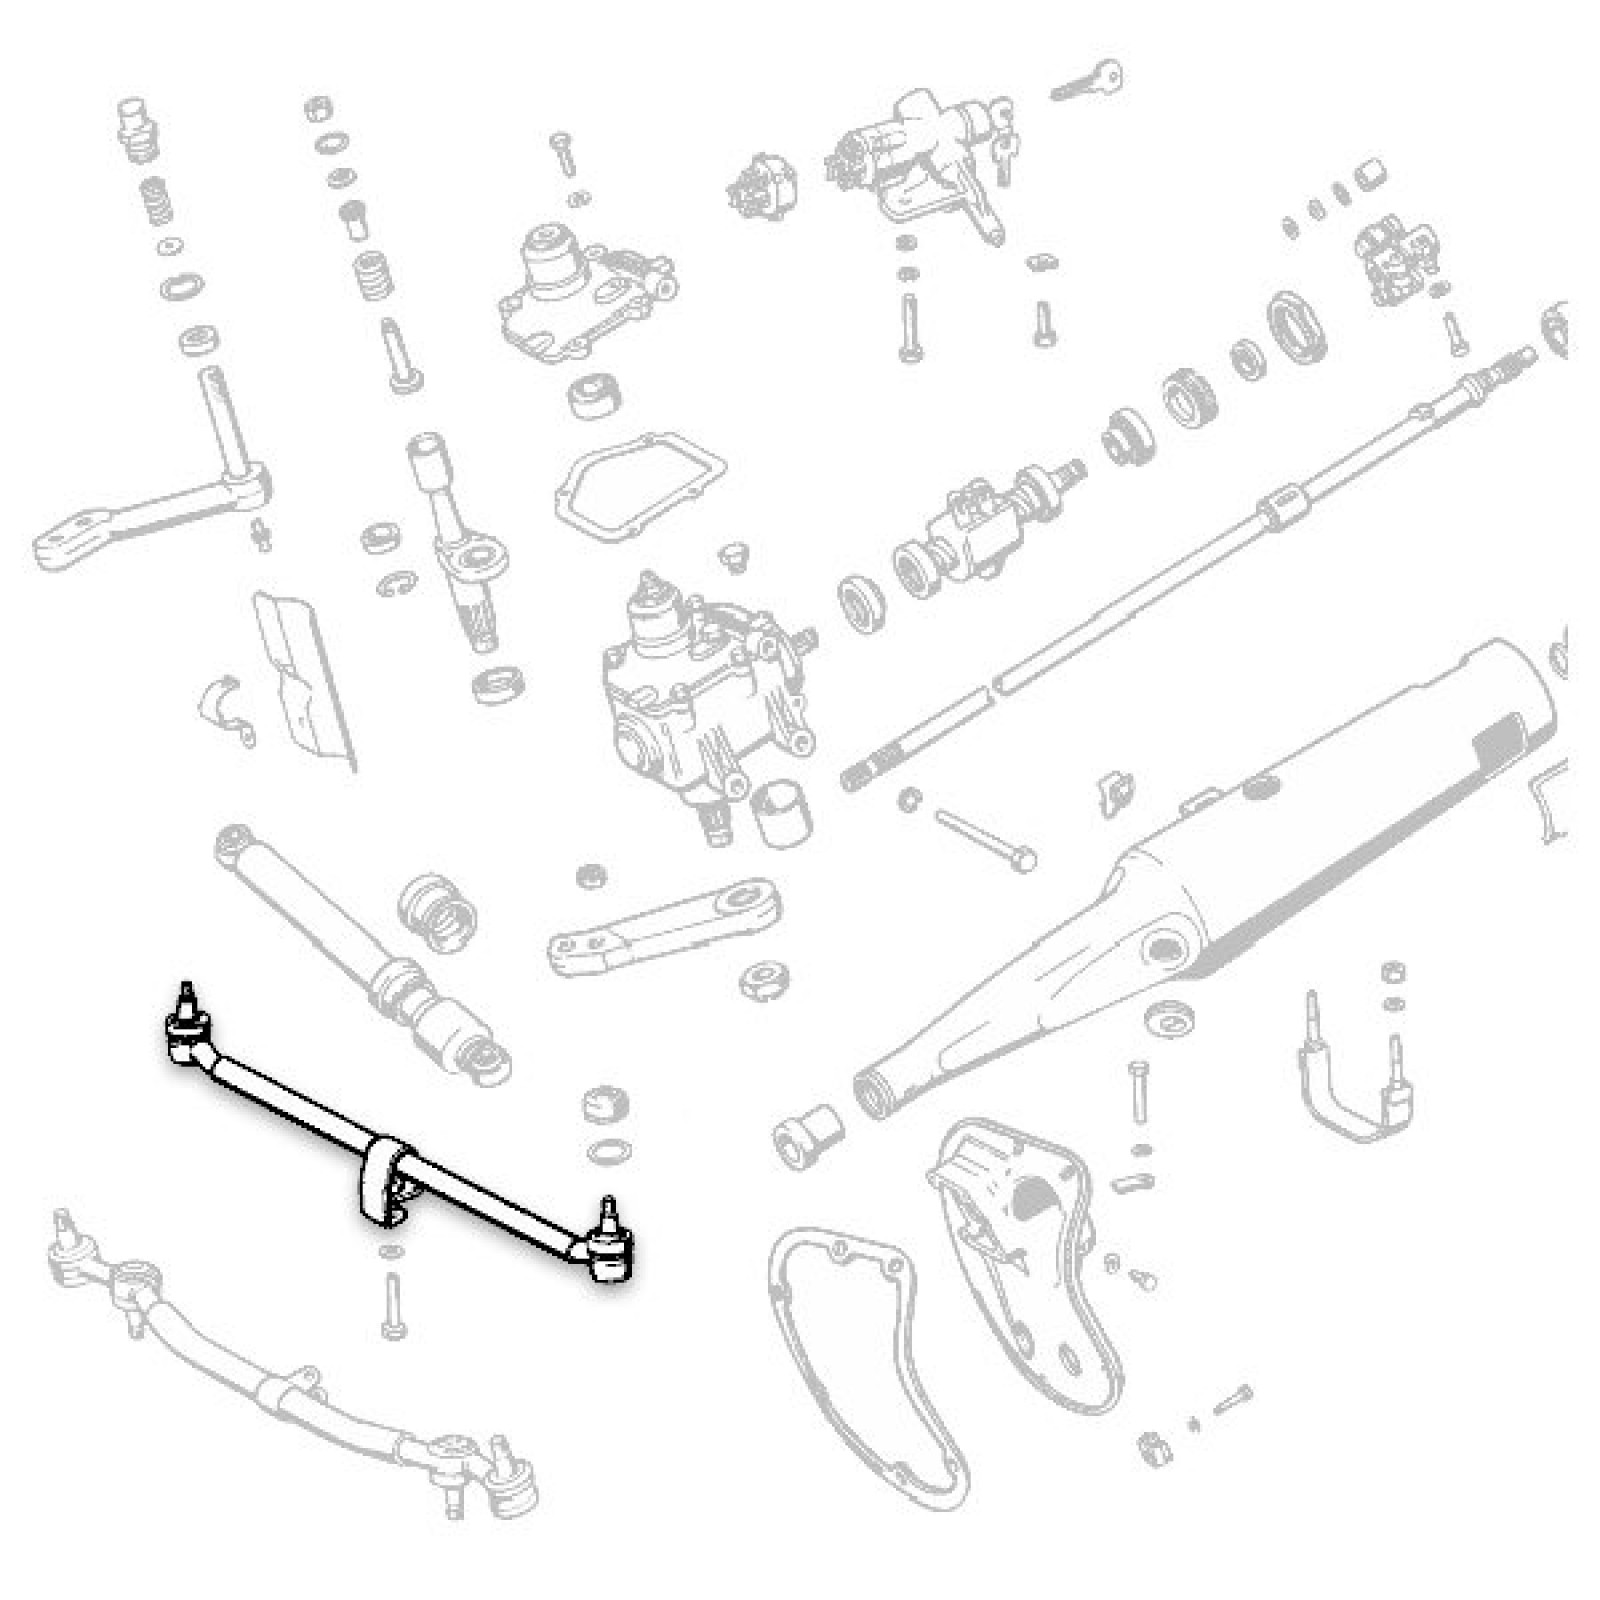 Trailblazer Tie Rod Location